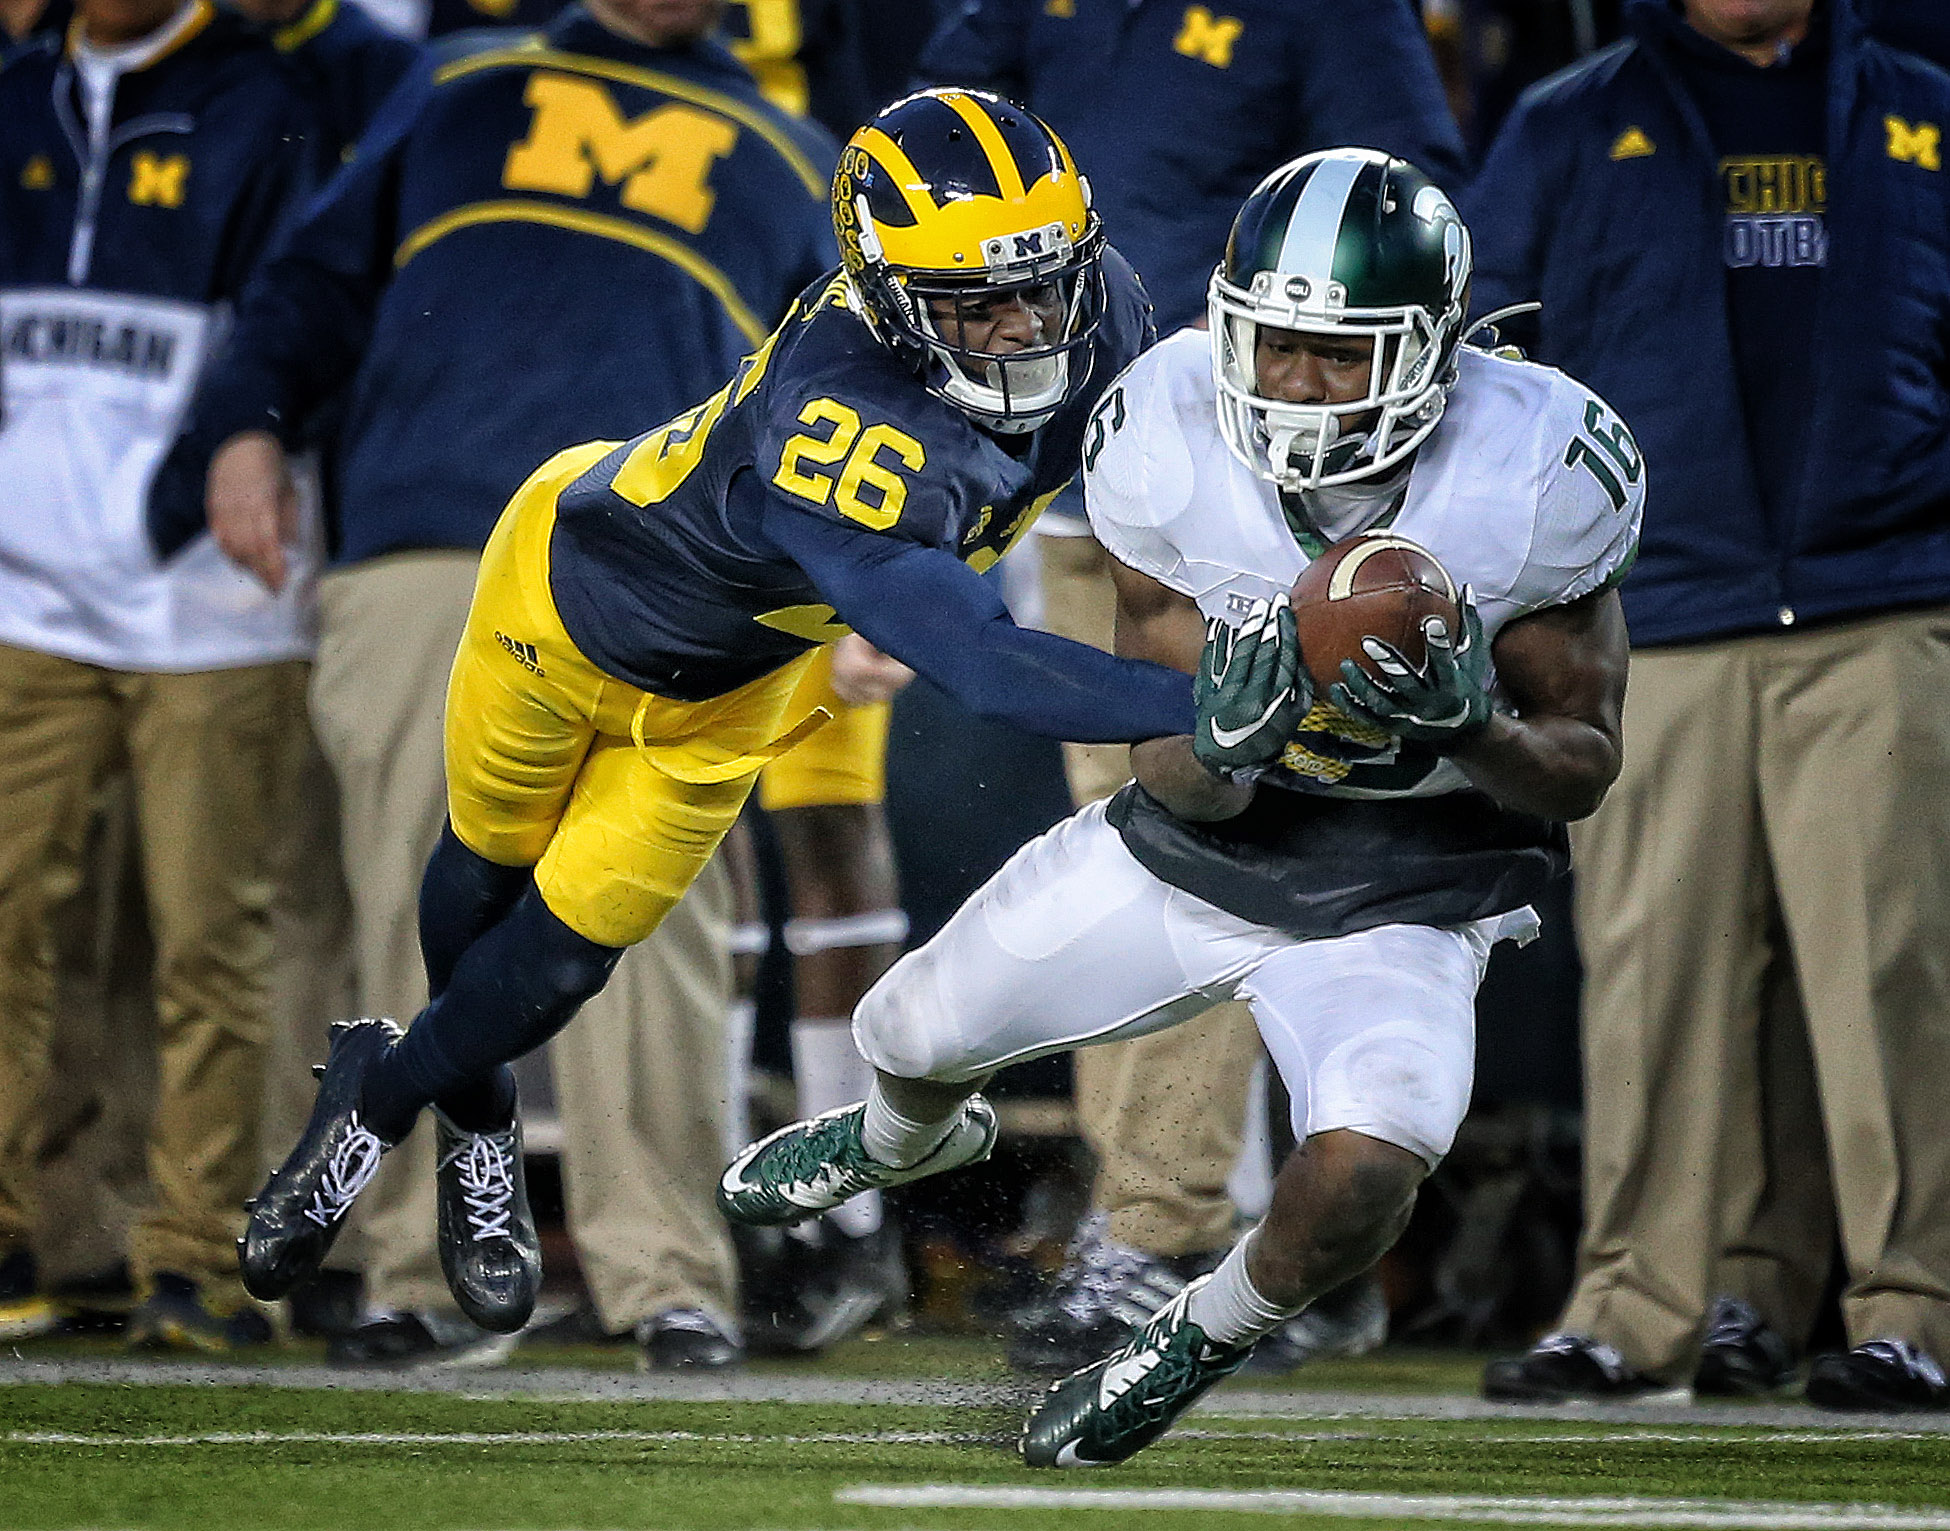 Oct 17, 2015; Ann Arbor, MI, USA; Michigan Wolverines cornerback Jourdan Lewis (26) defends against Michigan State Spartans wide receiver Aaron Burbridge (16) during the 2nd half of a game at Michigan Stadium. Mandatory Credit: Mike Carter-USA TODAY Sports